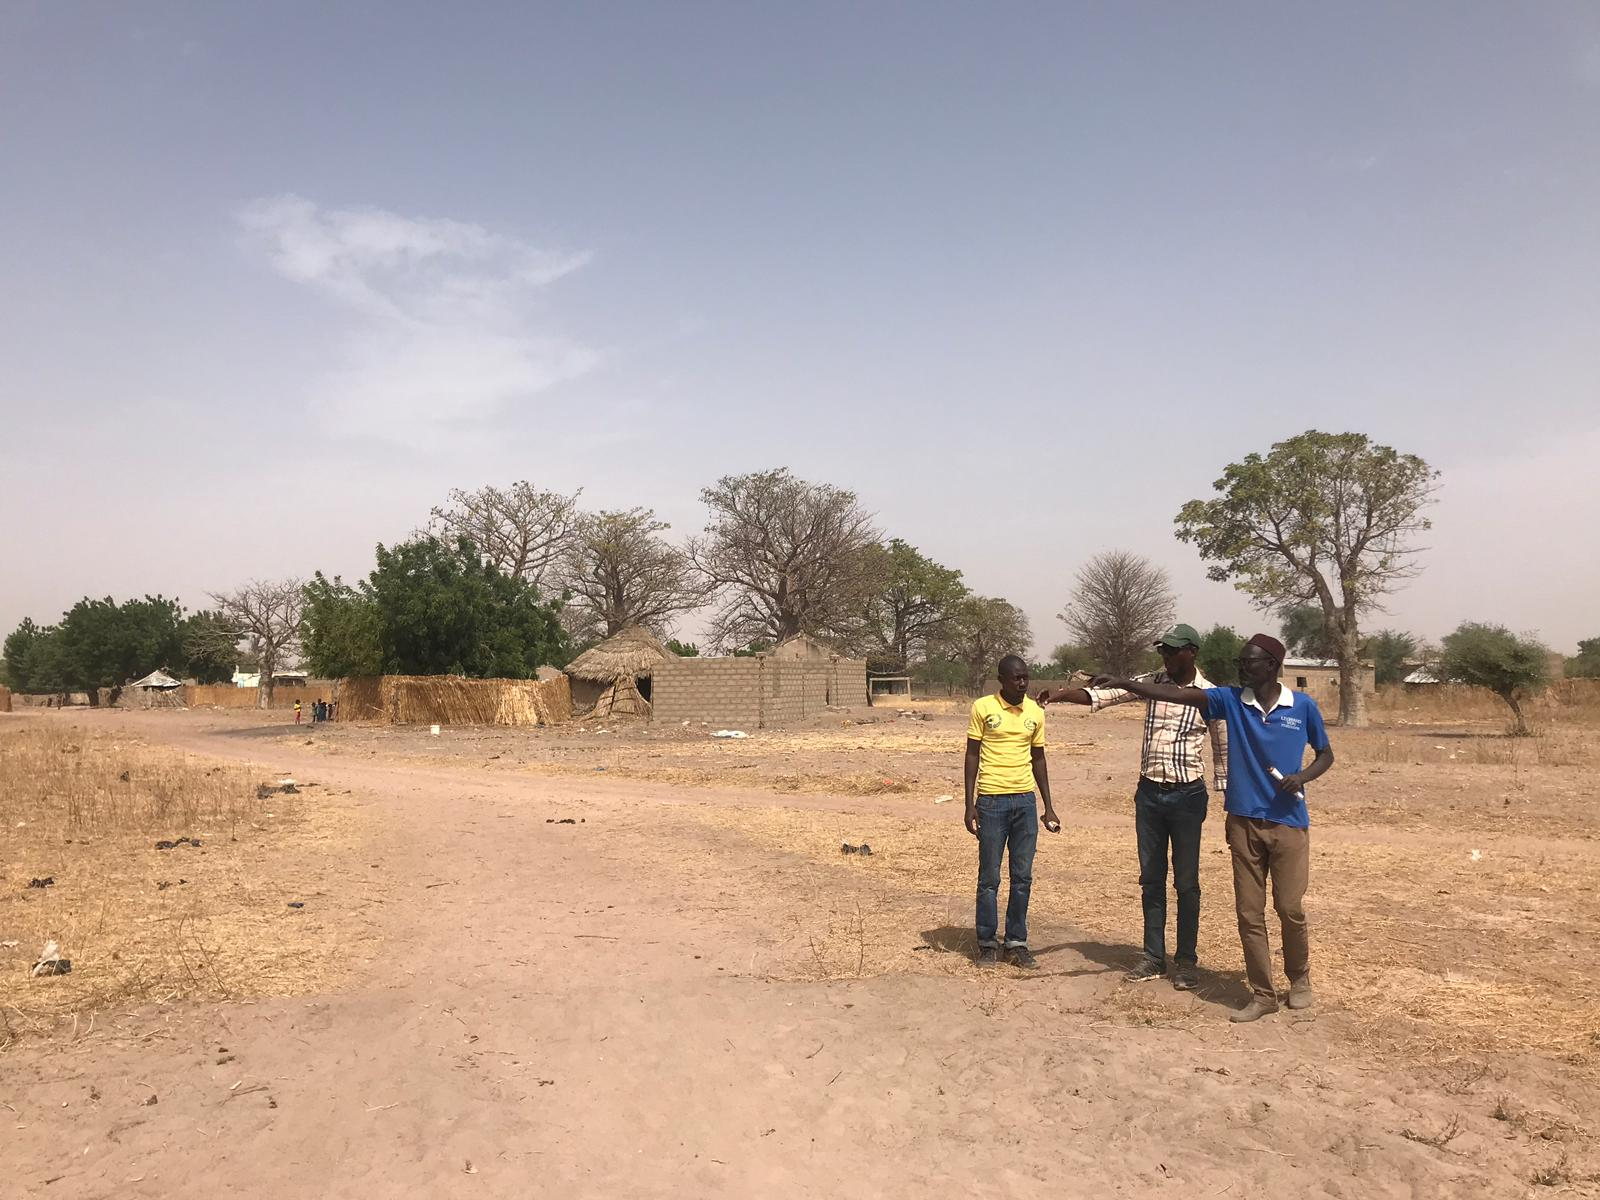 2019.02.07_FT surveying for the new classrooms.jpg